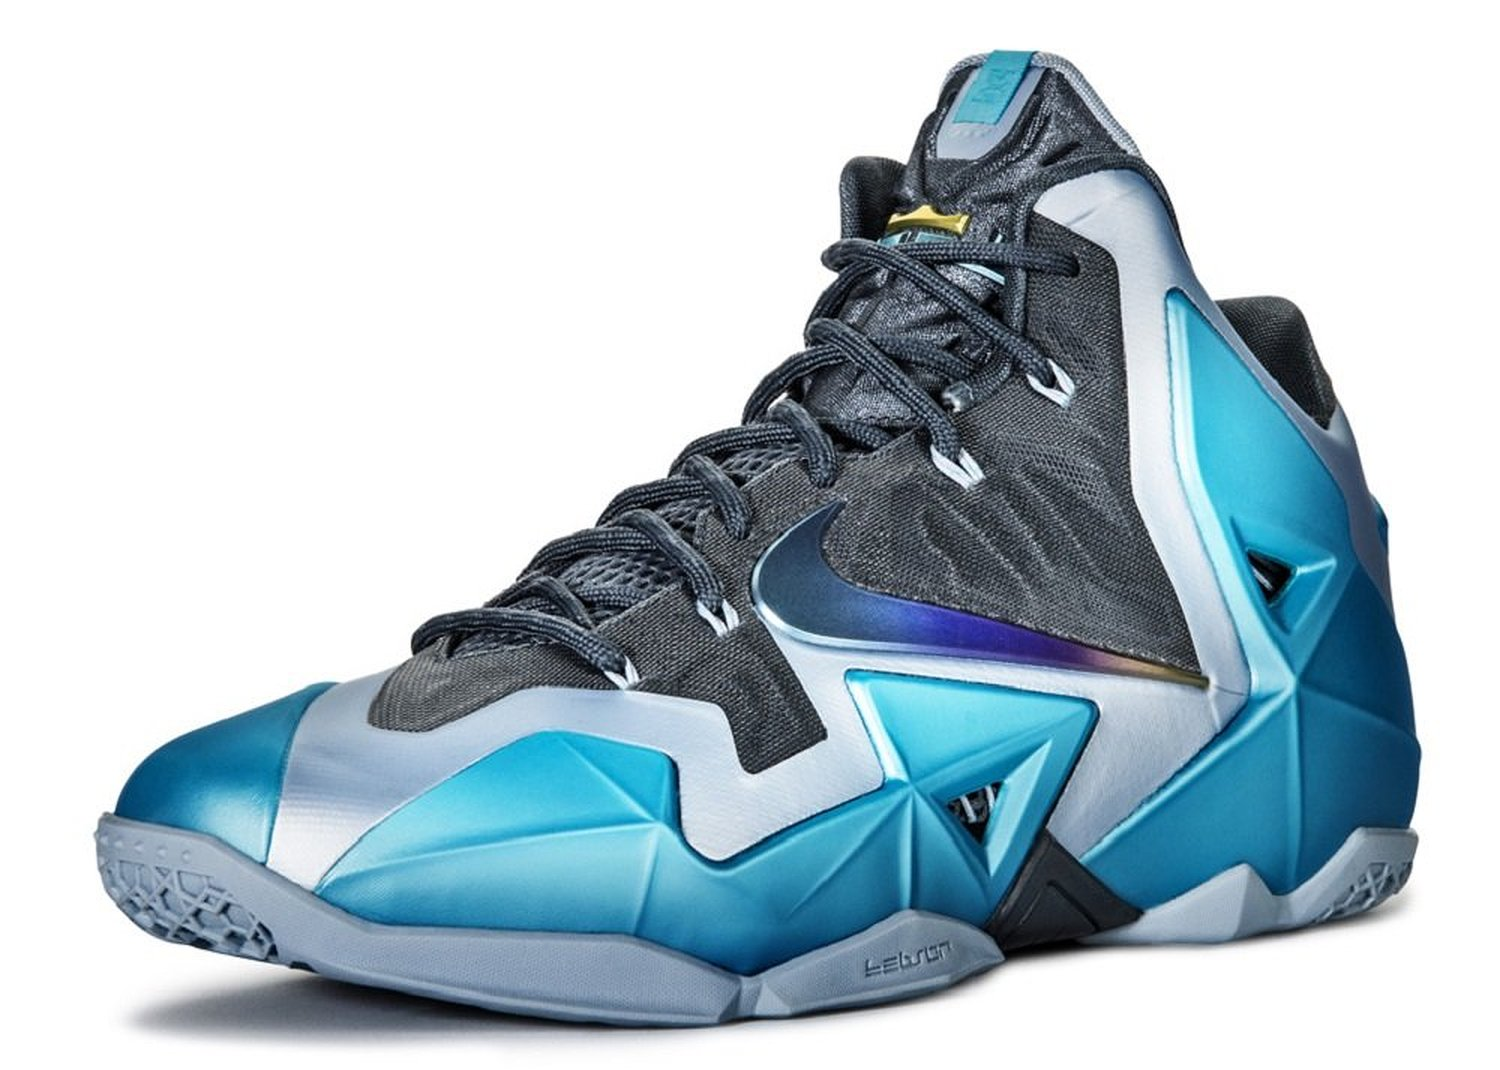 Amazon.com: nike men's lebron xi basketball shoe: shoes